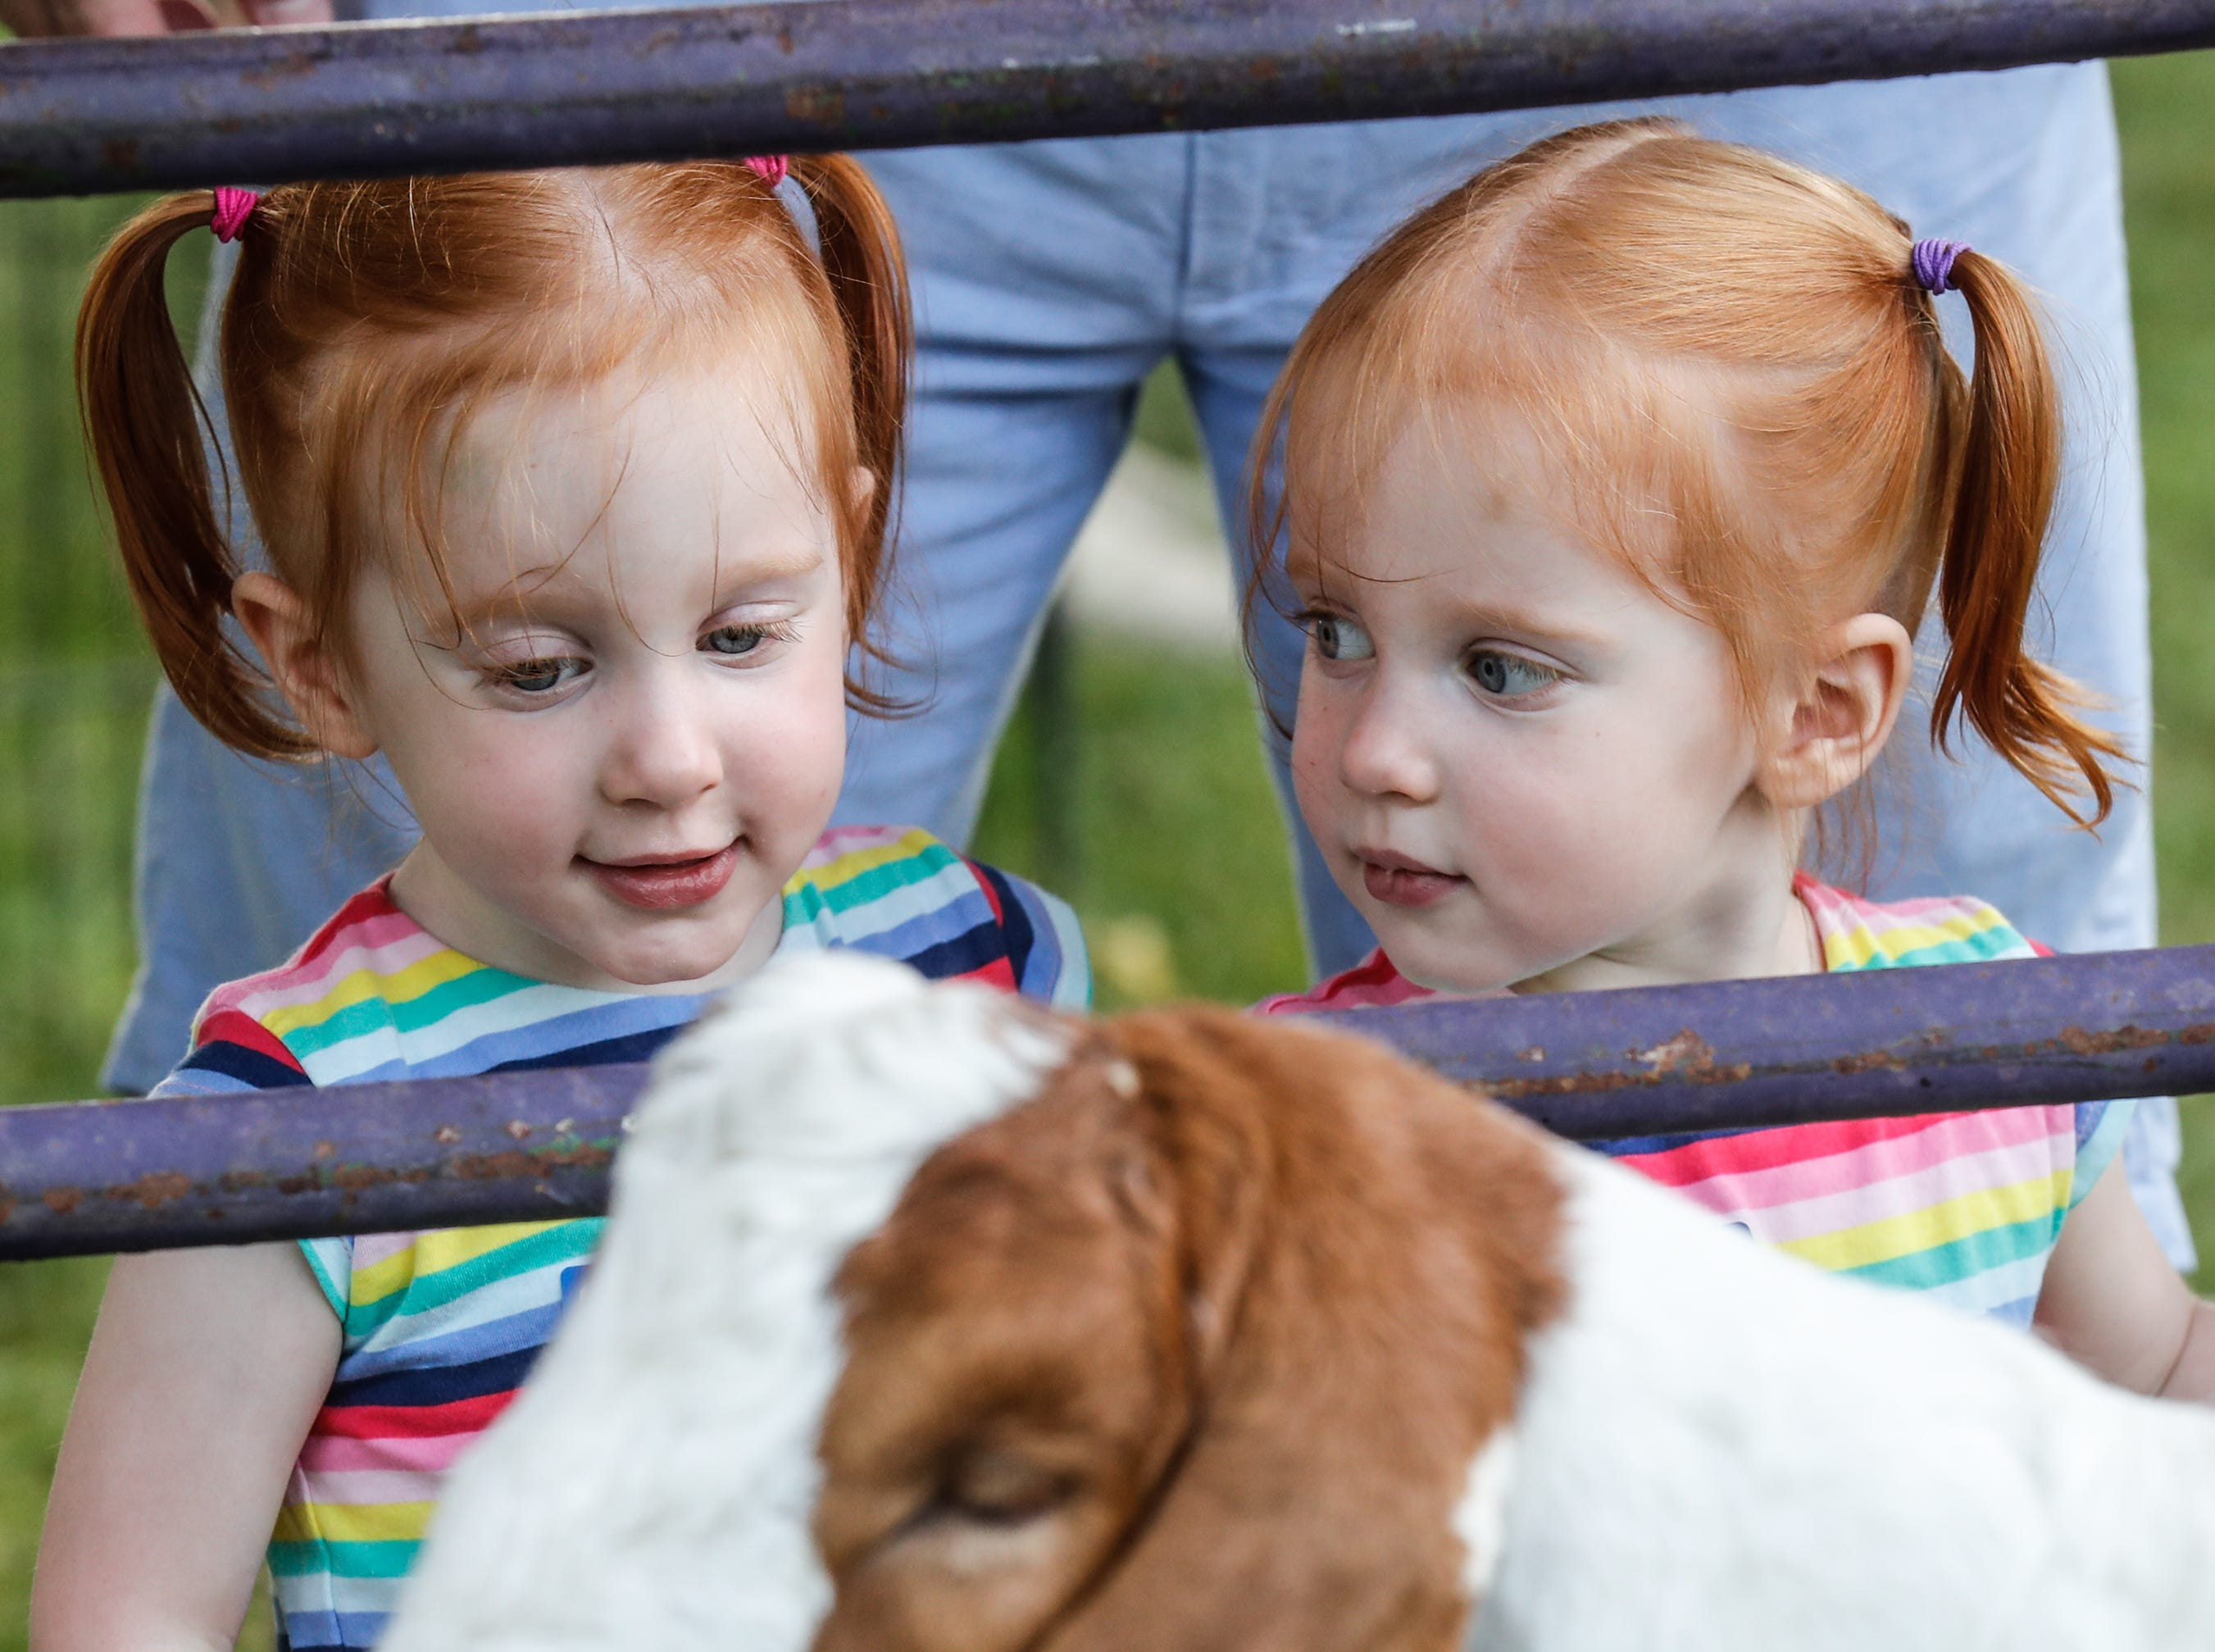 Cecelia, left, and Madeline Malik meet a goat in the petting zoo during the annual St. Vincent and Peyton Manning ChildrenÕs Hospital NICU Reunion at Lions Park in Zionsville Ind. on Sat. Aug. 18, 2018.